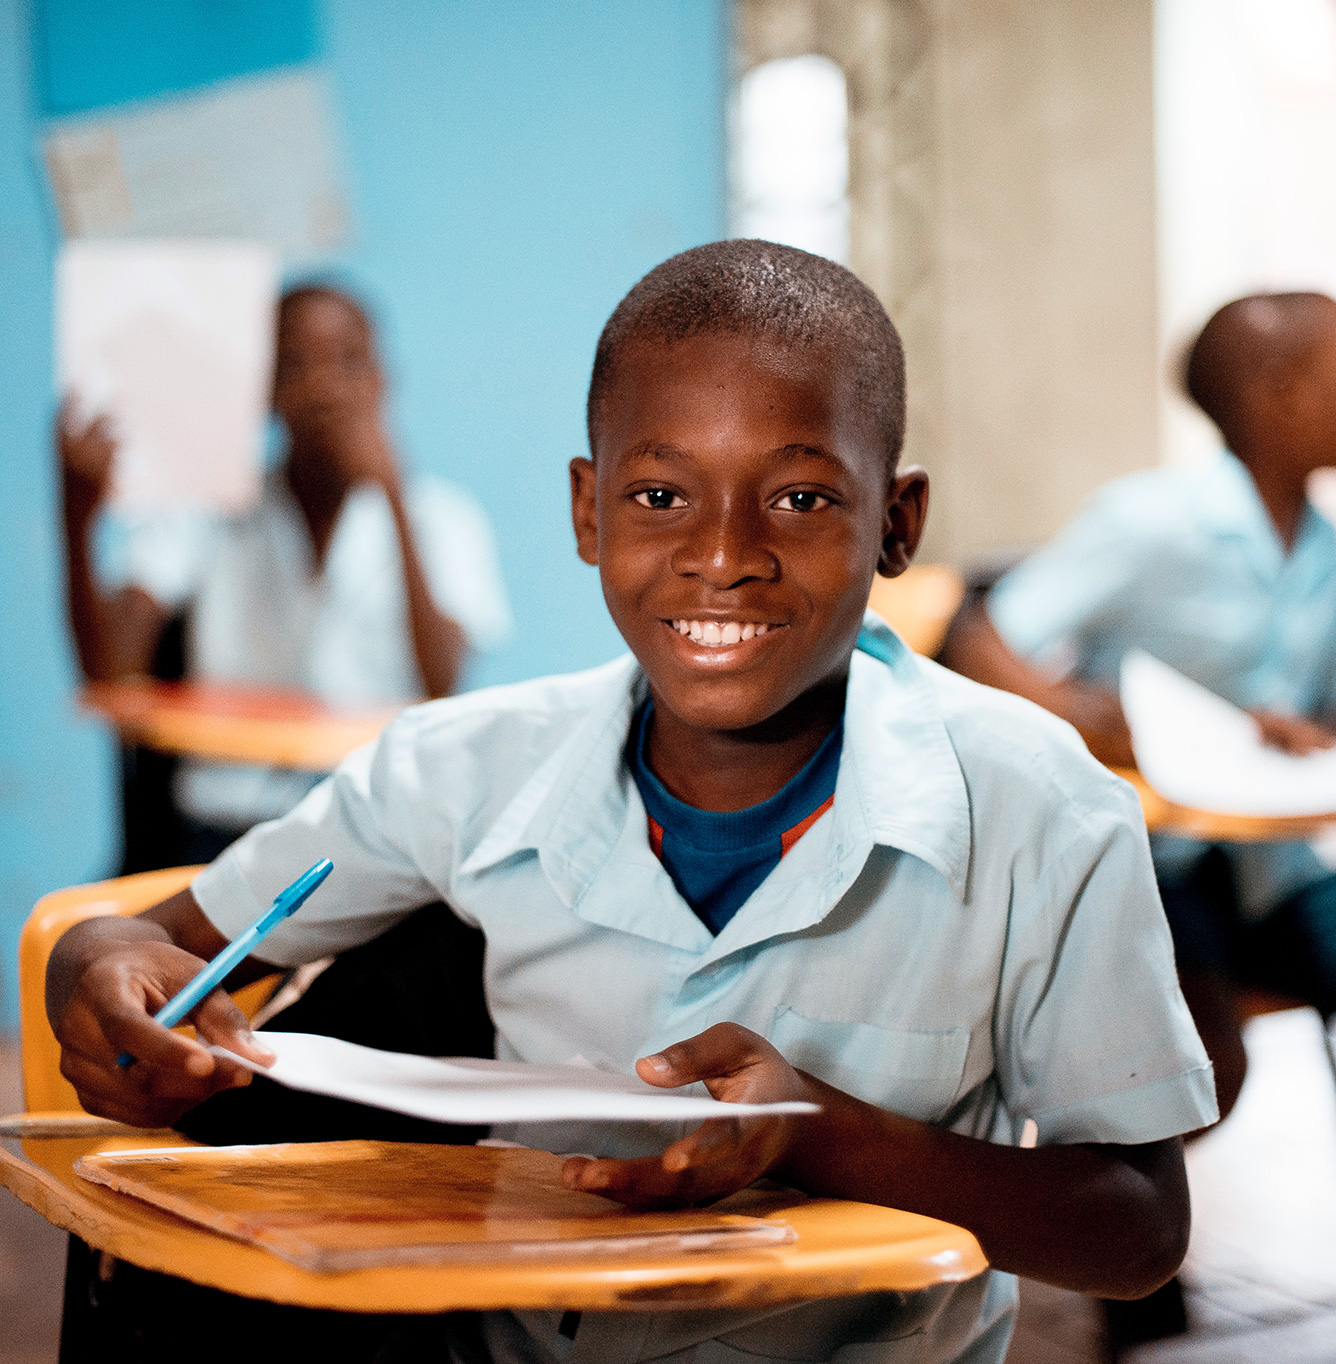 Happy Street Child student sitting in a classroom